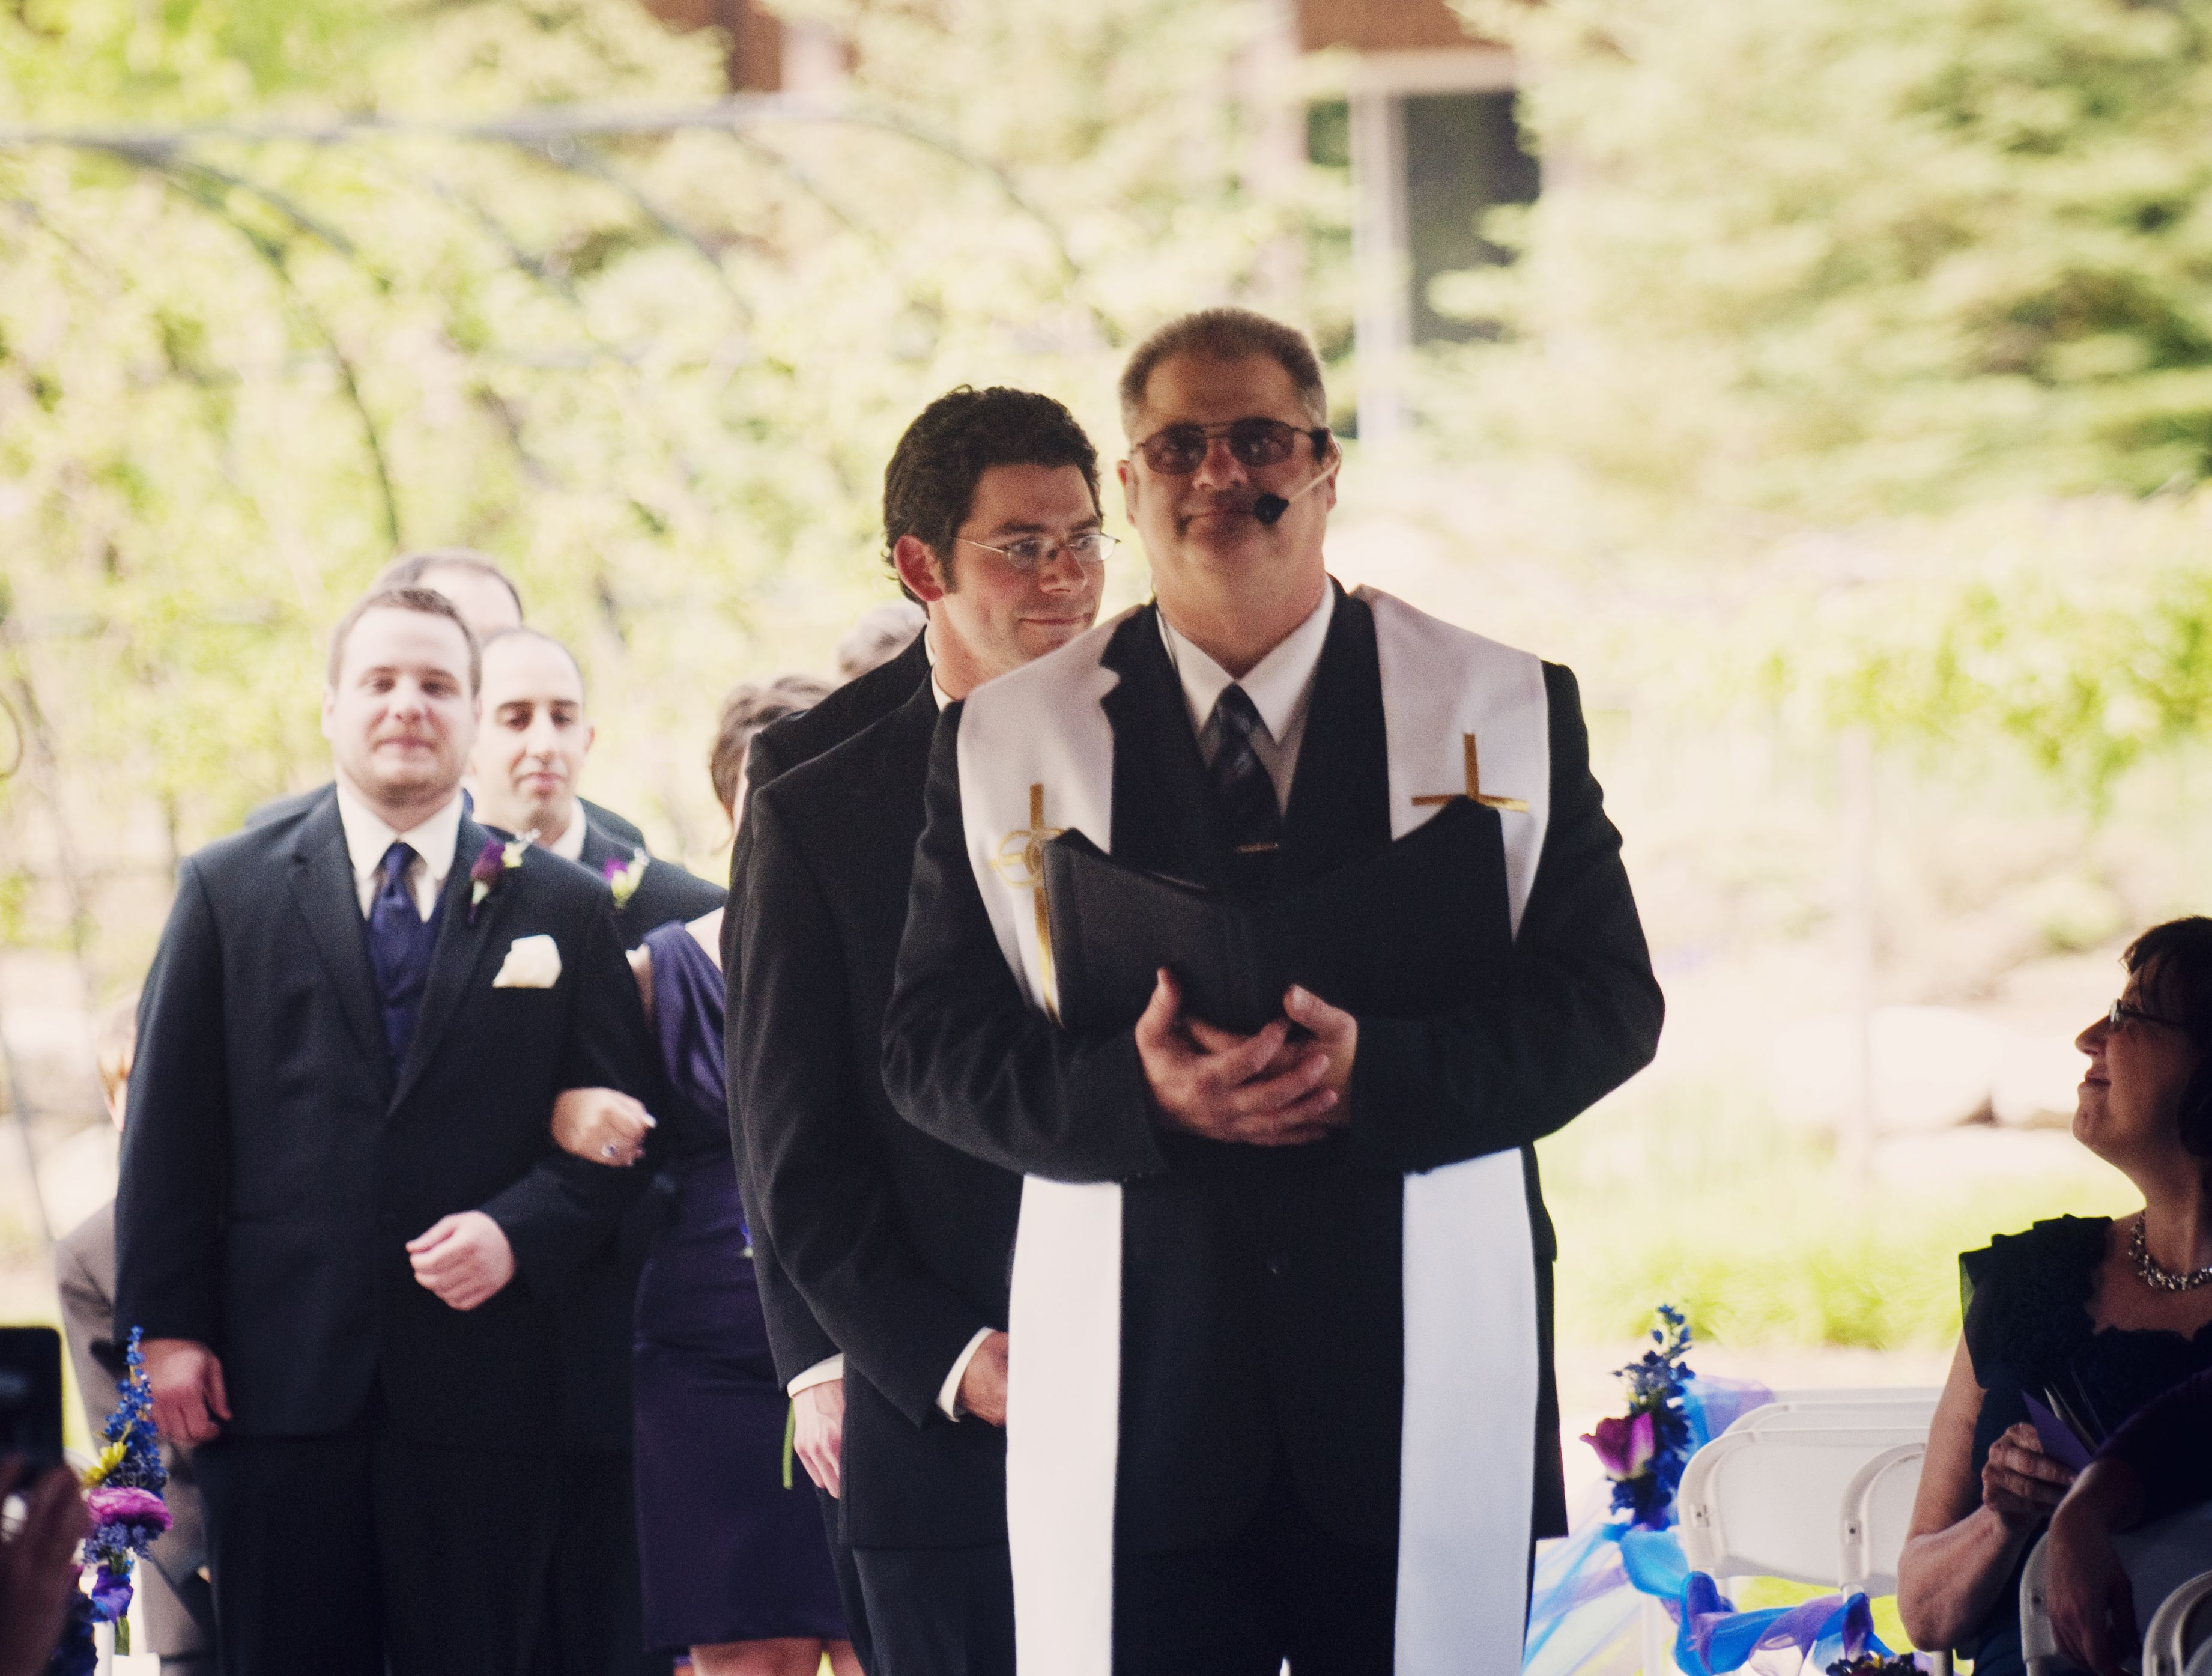 Reverend Tab Wedding Minister Christian Wedding Wedding Officiant